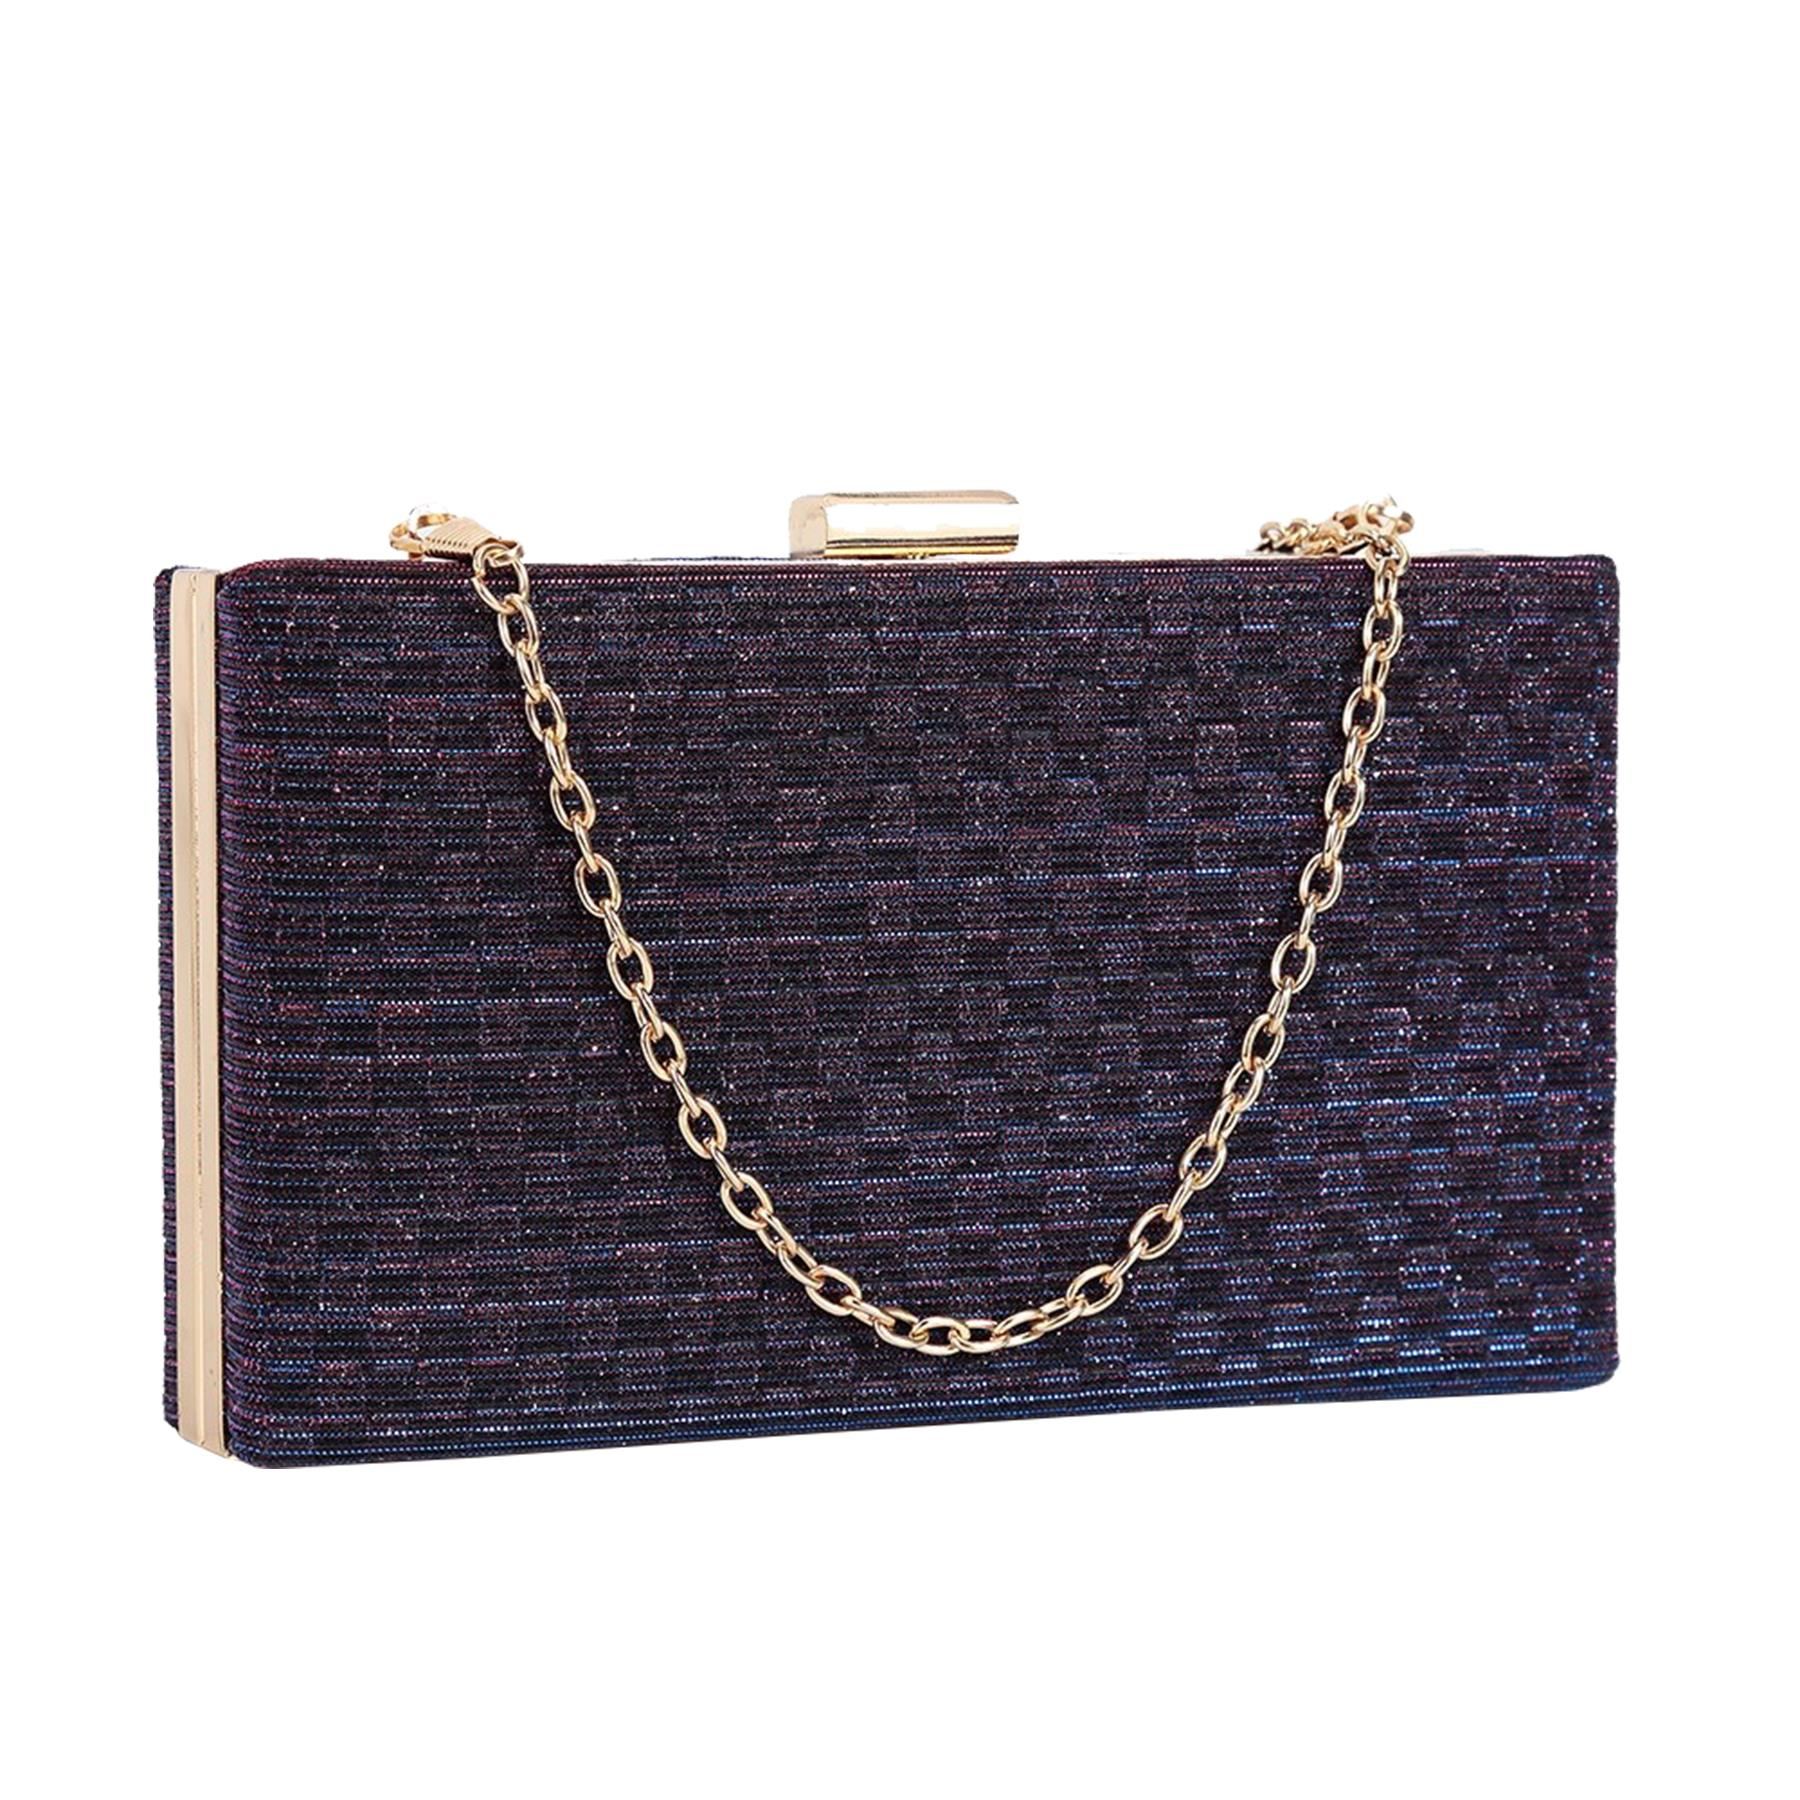 New-Sparkly-Shimmer-Glitter-Chain-Ladies-Hard-Compact-Bridal-Clutch-Bag-Purse thumbnail 12